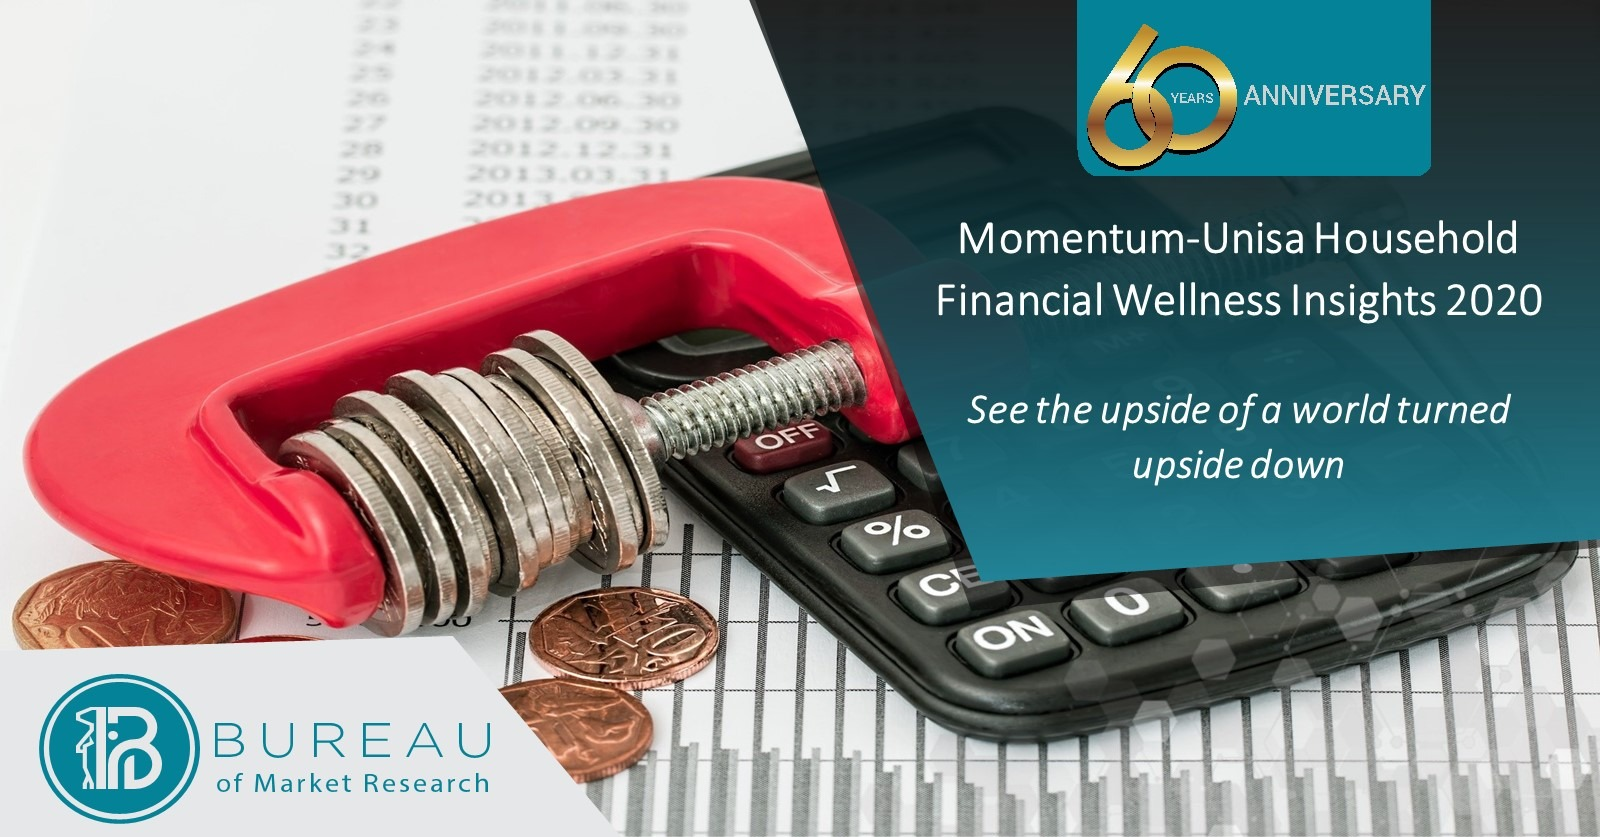 MOMENTUM-UNISA HOUSEHOLD FINANCIAL WELLNESS INSIGHTS 2020: See the upside of a world turned upside down